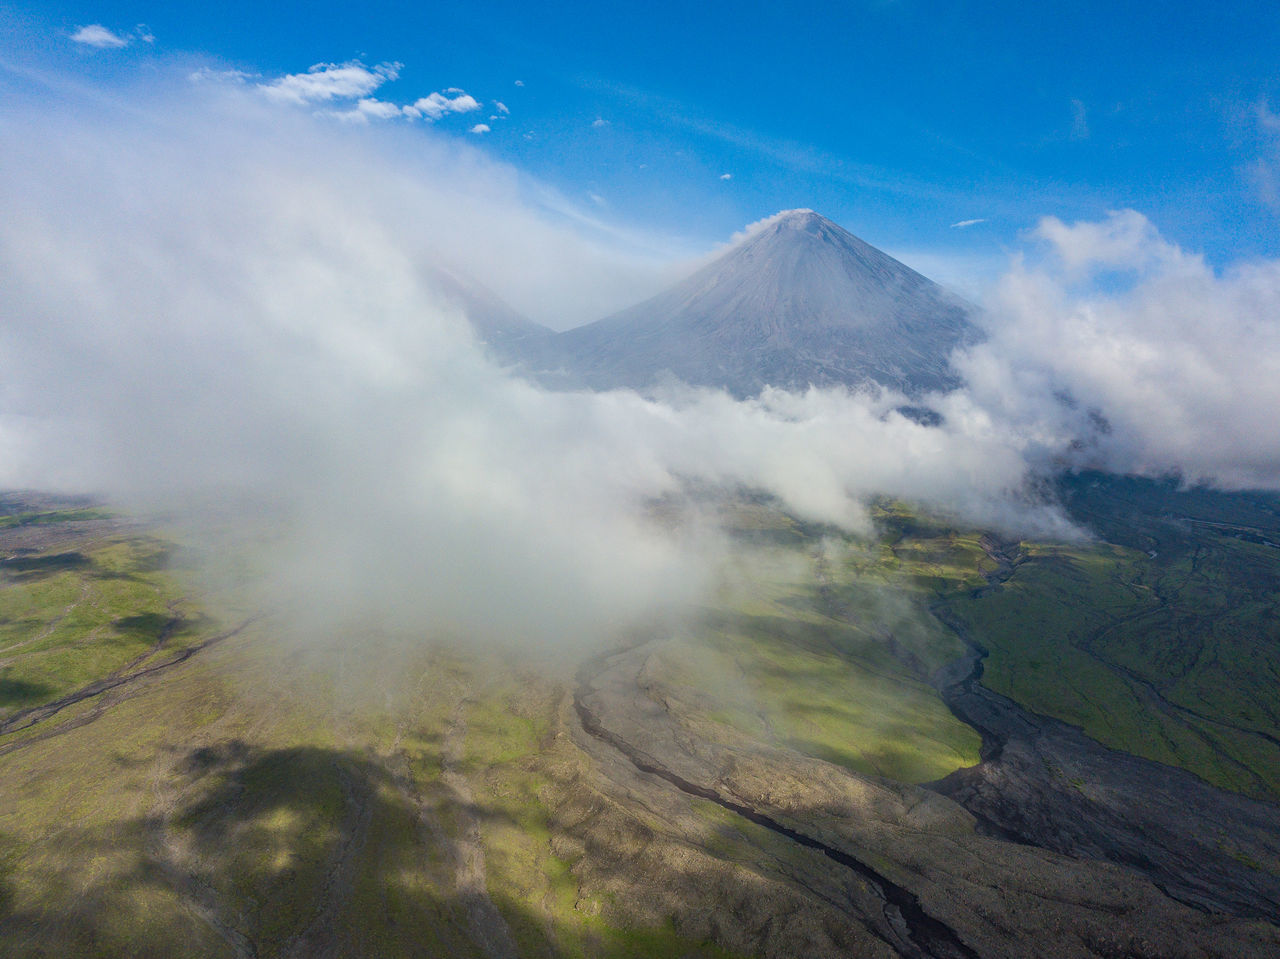 Exploring Volcanoes of Kamchatka Aerial Shot Expedition Exploring Kamchatka krai Nature Power Science Travel Volcanoes active volcano adventure aerial aerial view danger kamchatka landscape lava mavic pro mountain outdoors power in nature volcano